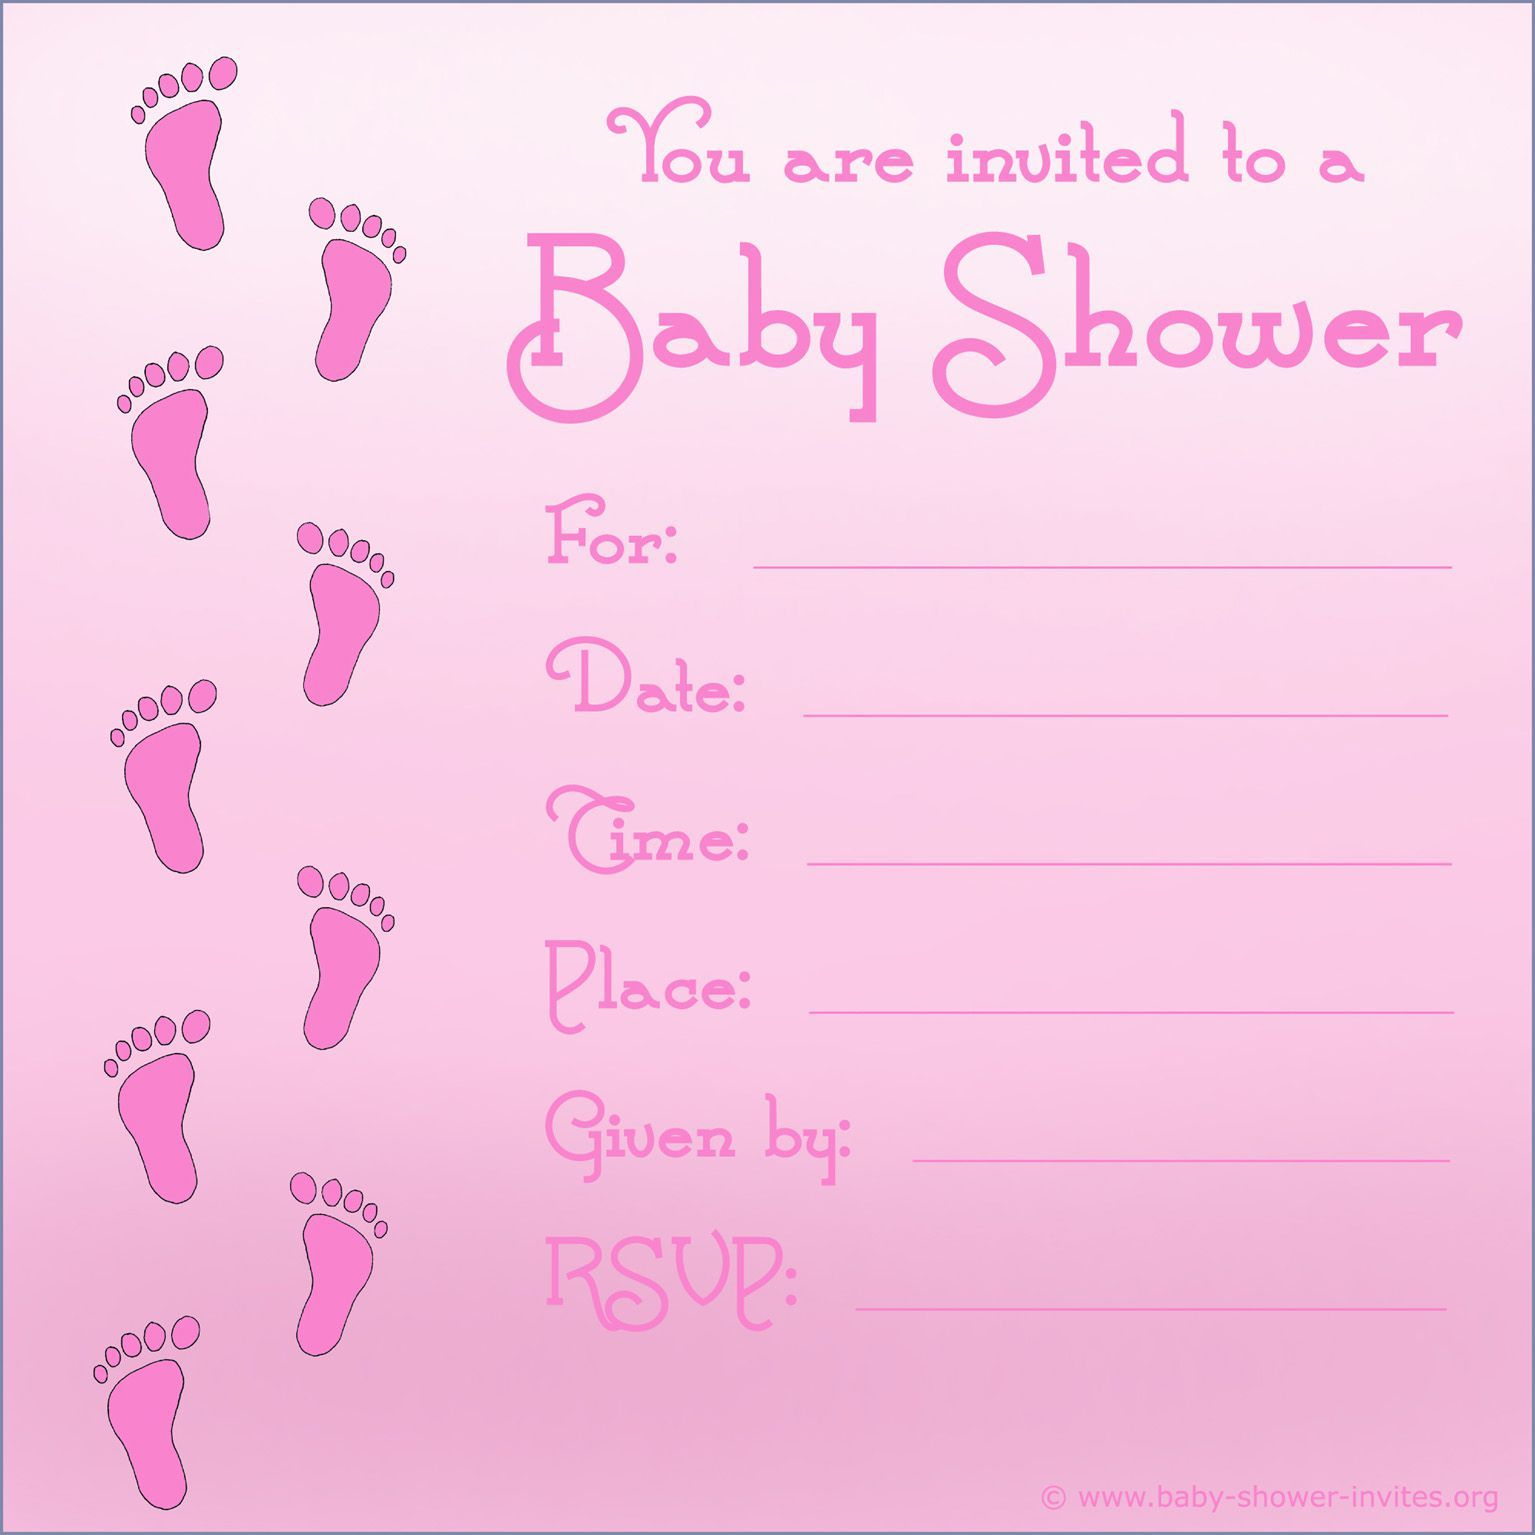 baby shower invitations design and print | baby shower invitations ...